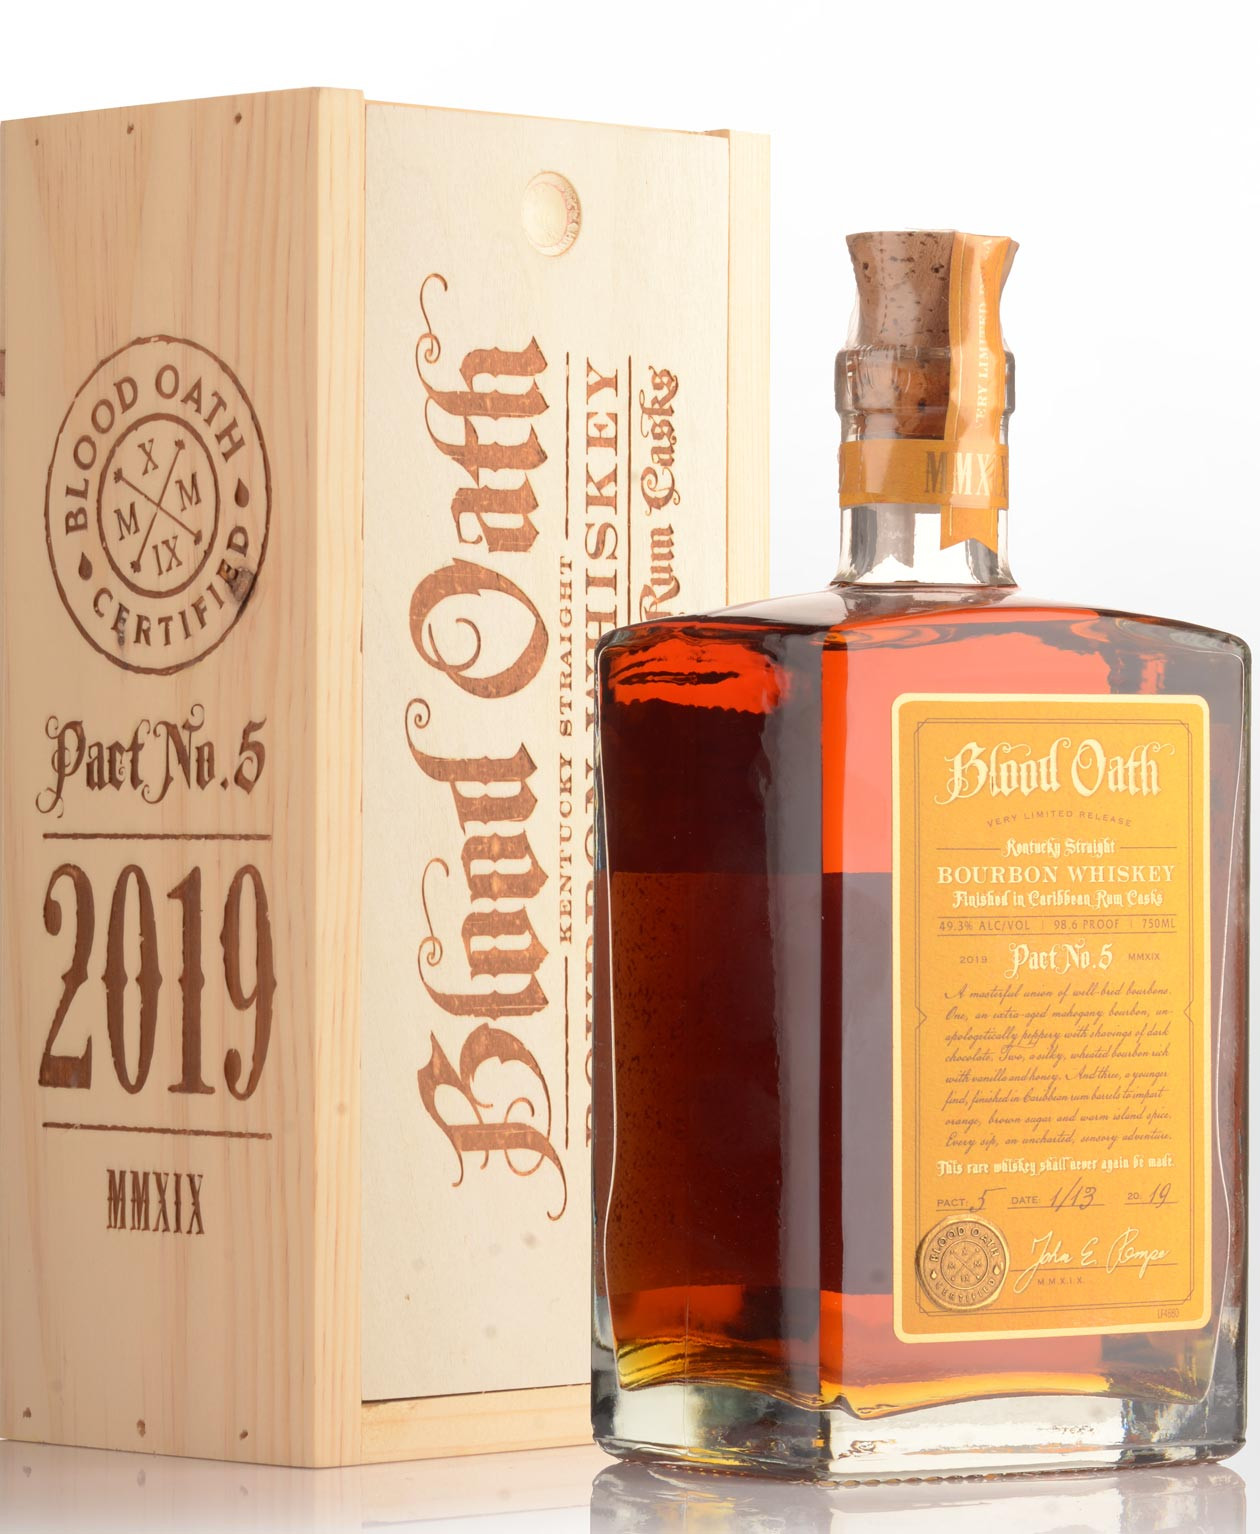 Blood Oath Pact No 5 Bourbon Finished in Caribbean Rum Casks